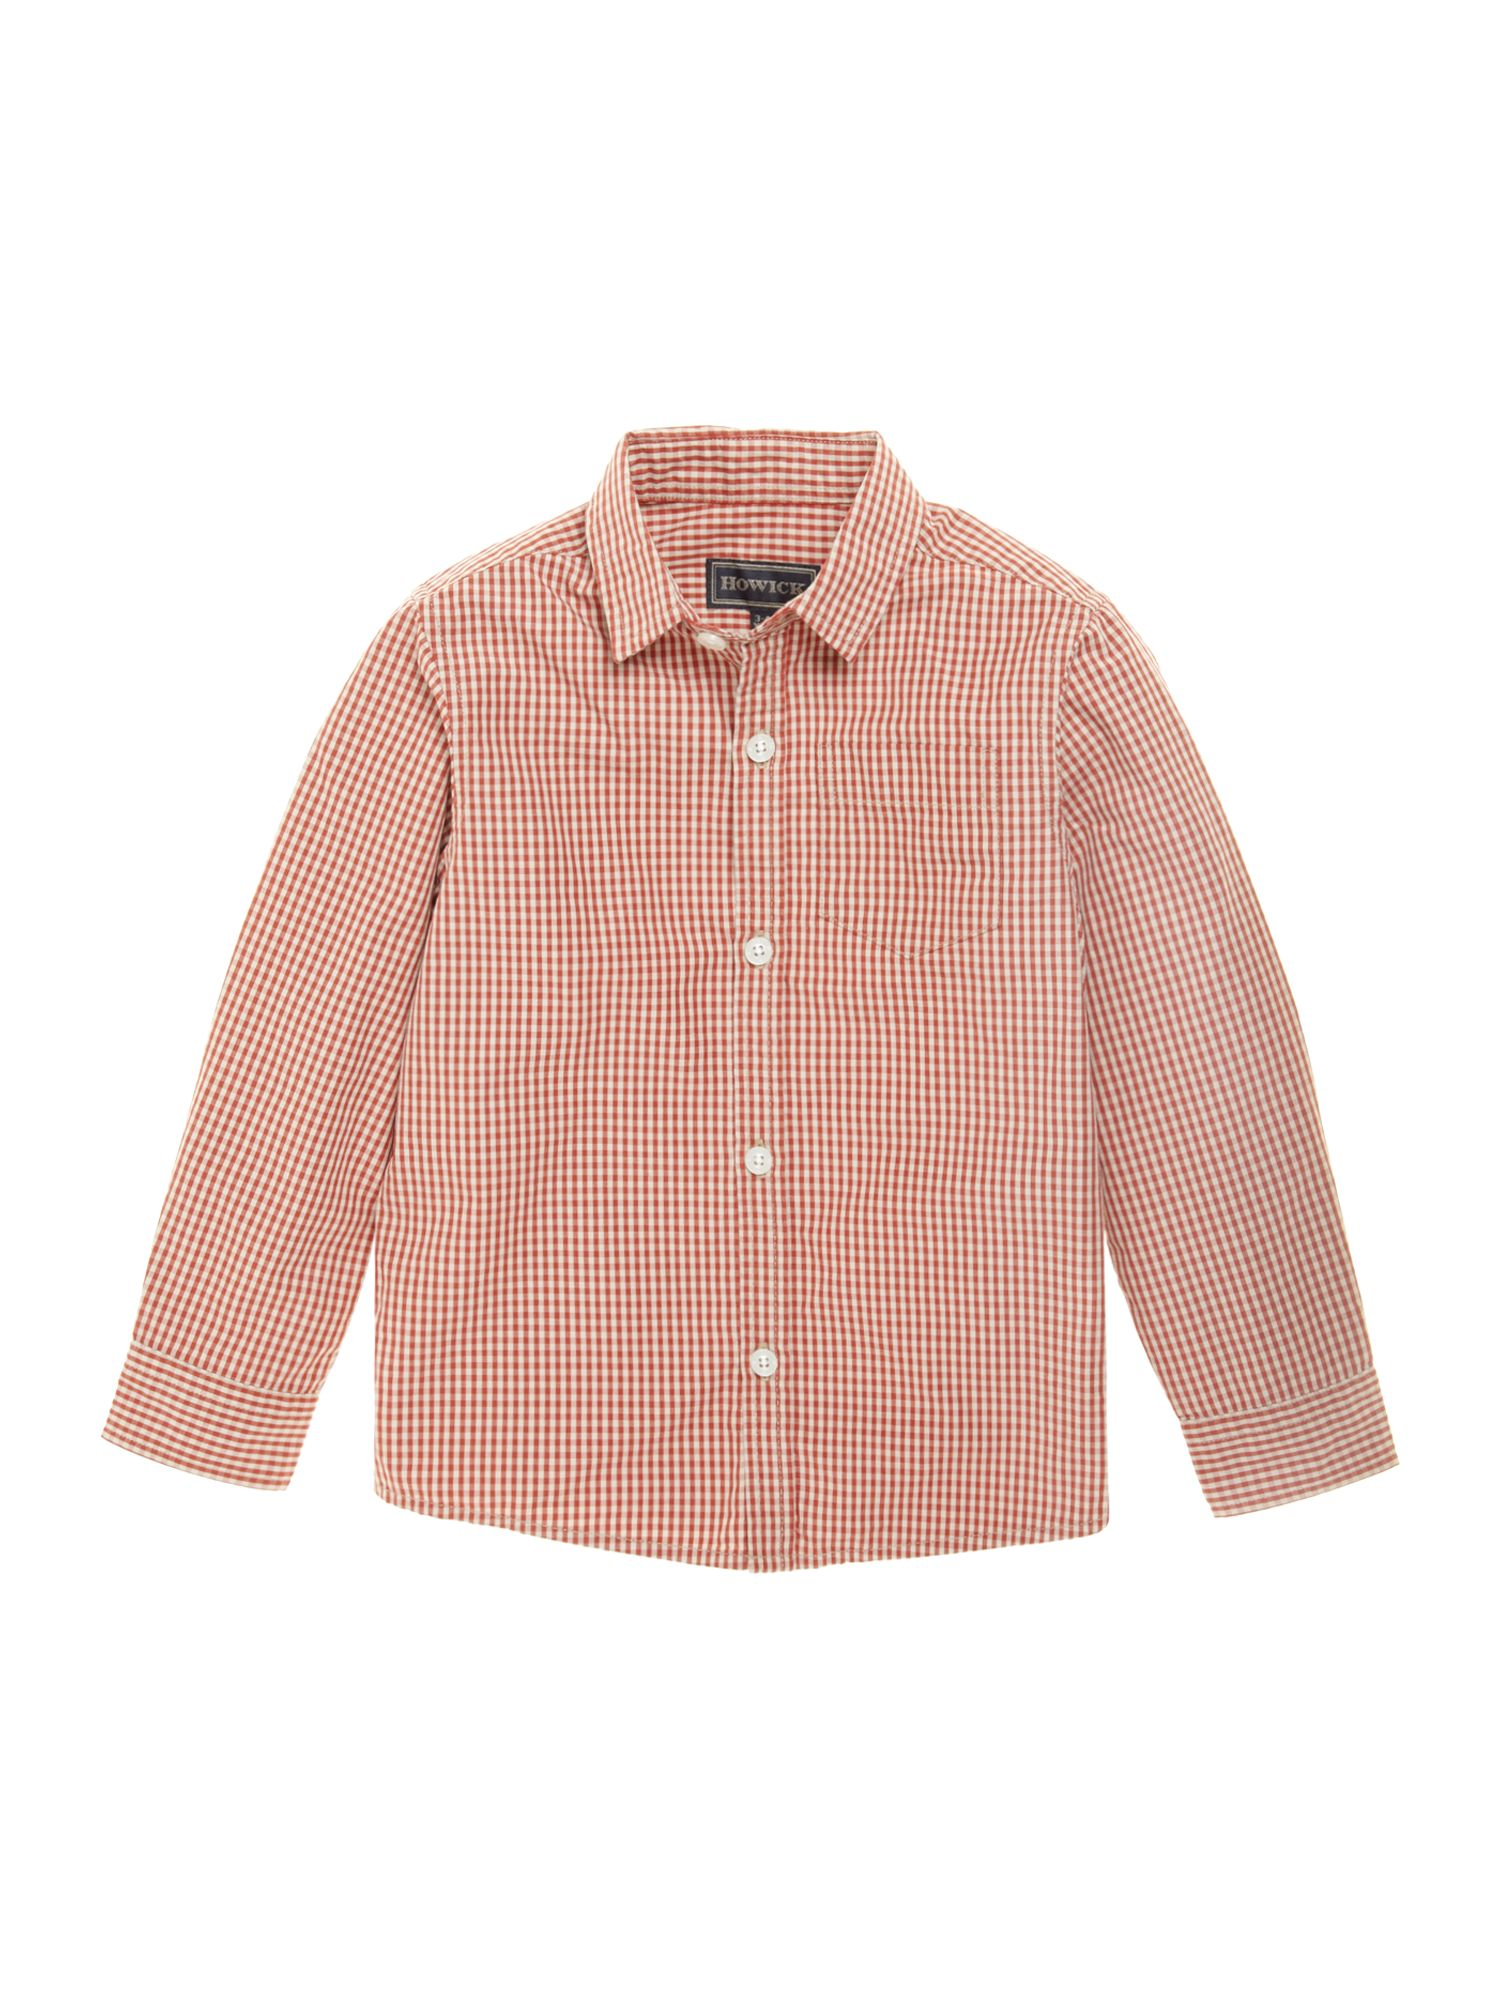 Boys gingham shirt